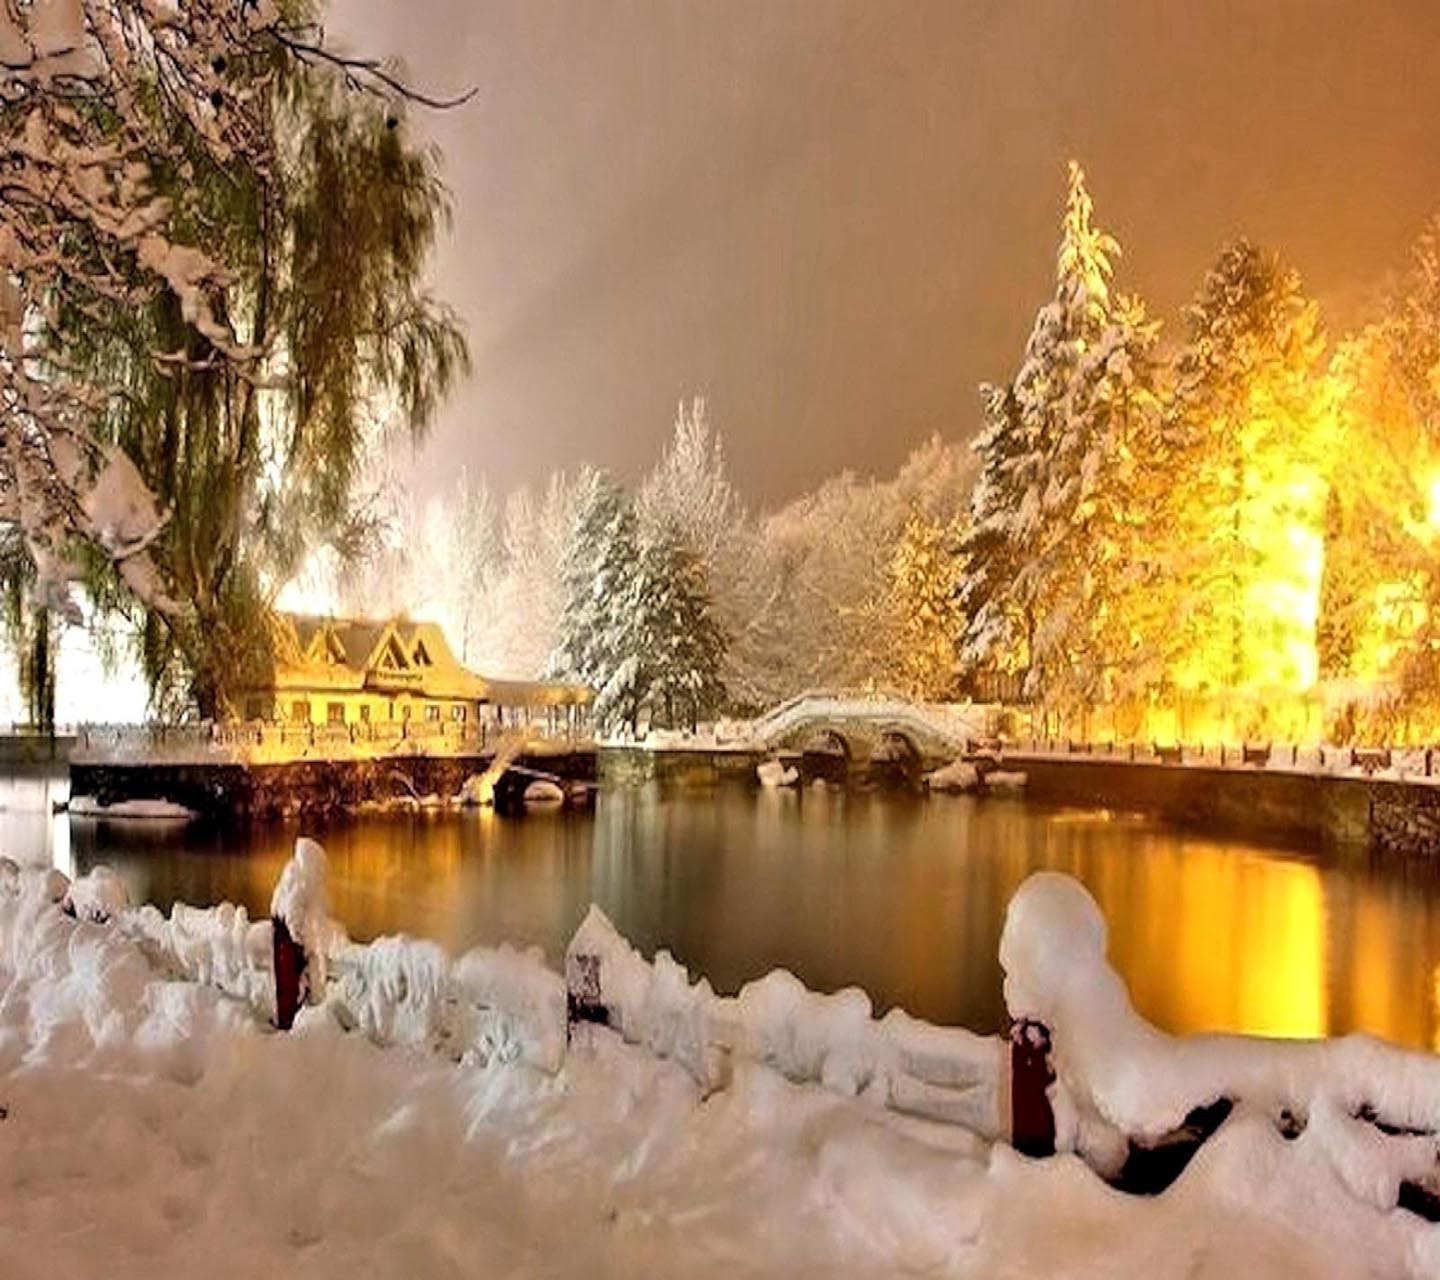 Winter Wallpaper: 21+ Scenery Wallpapers, Nature, Backgrounds, Images